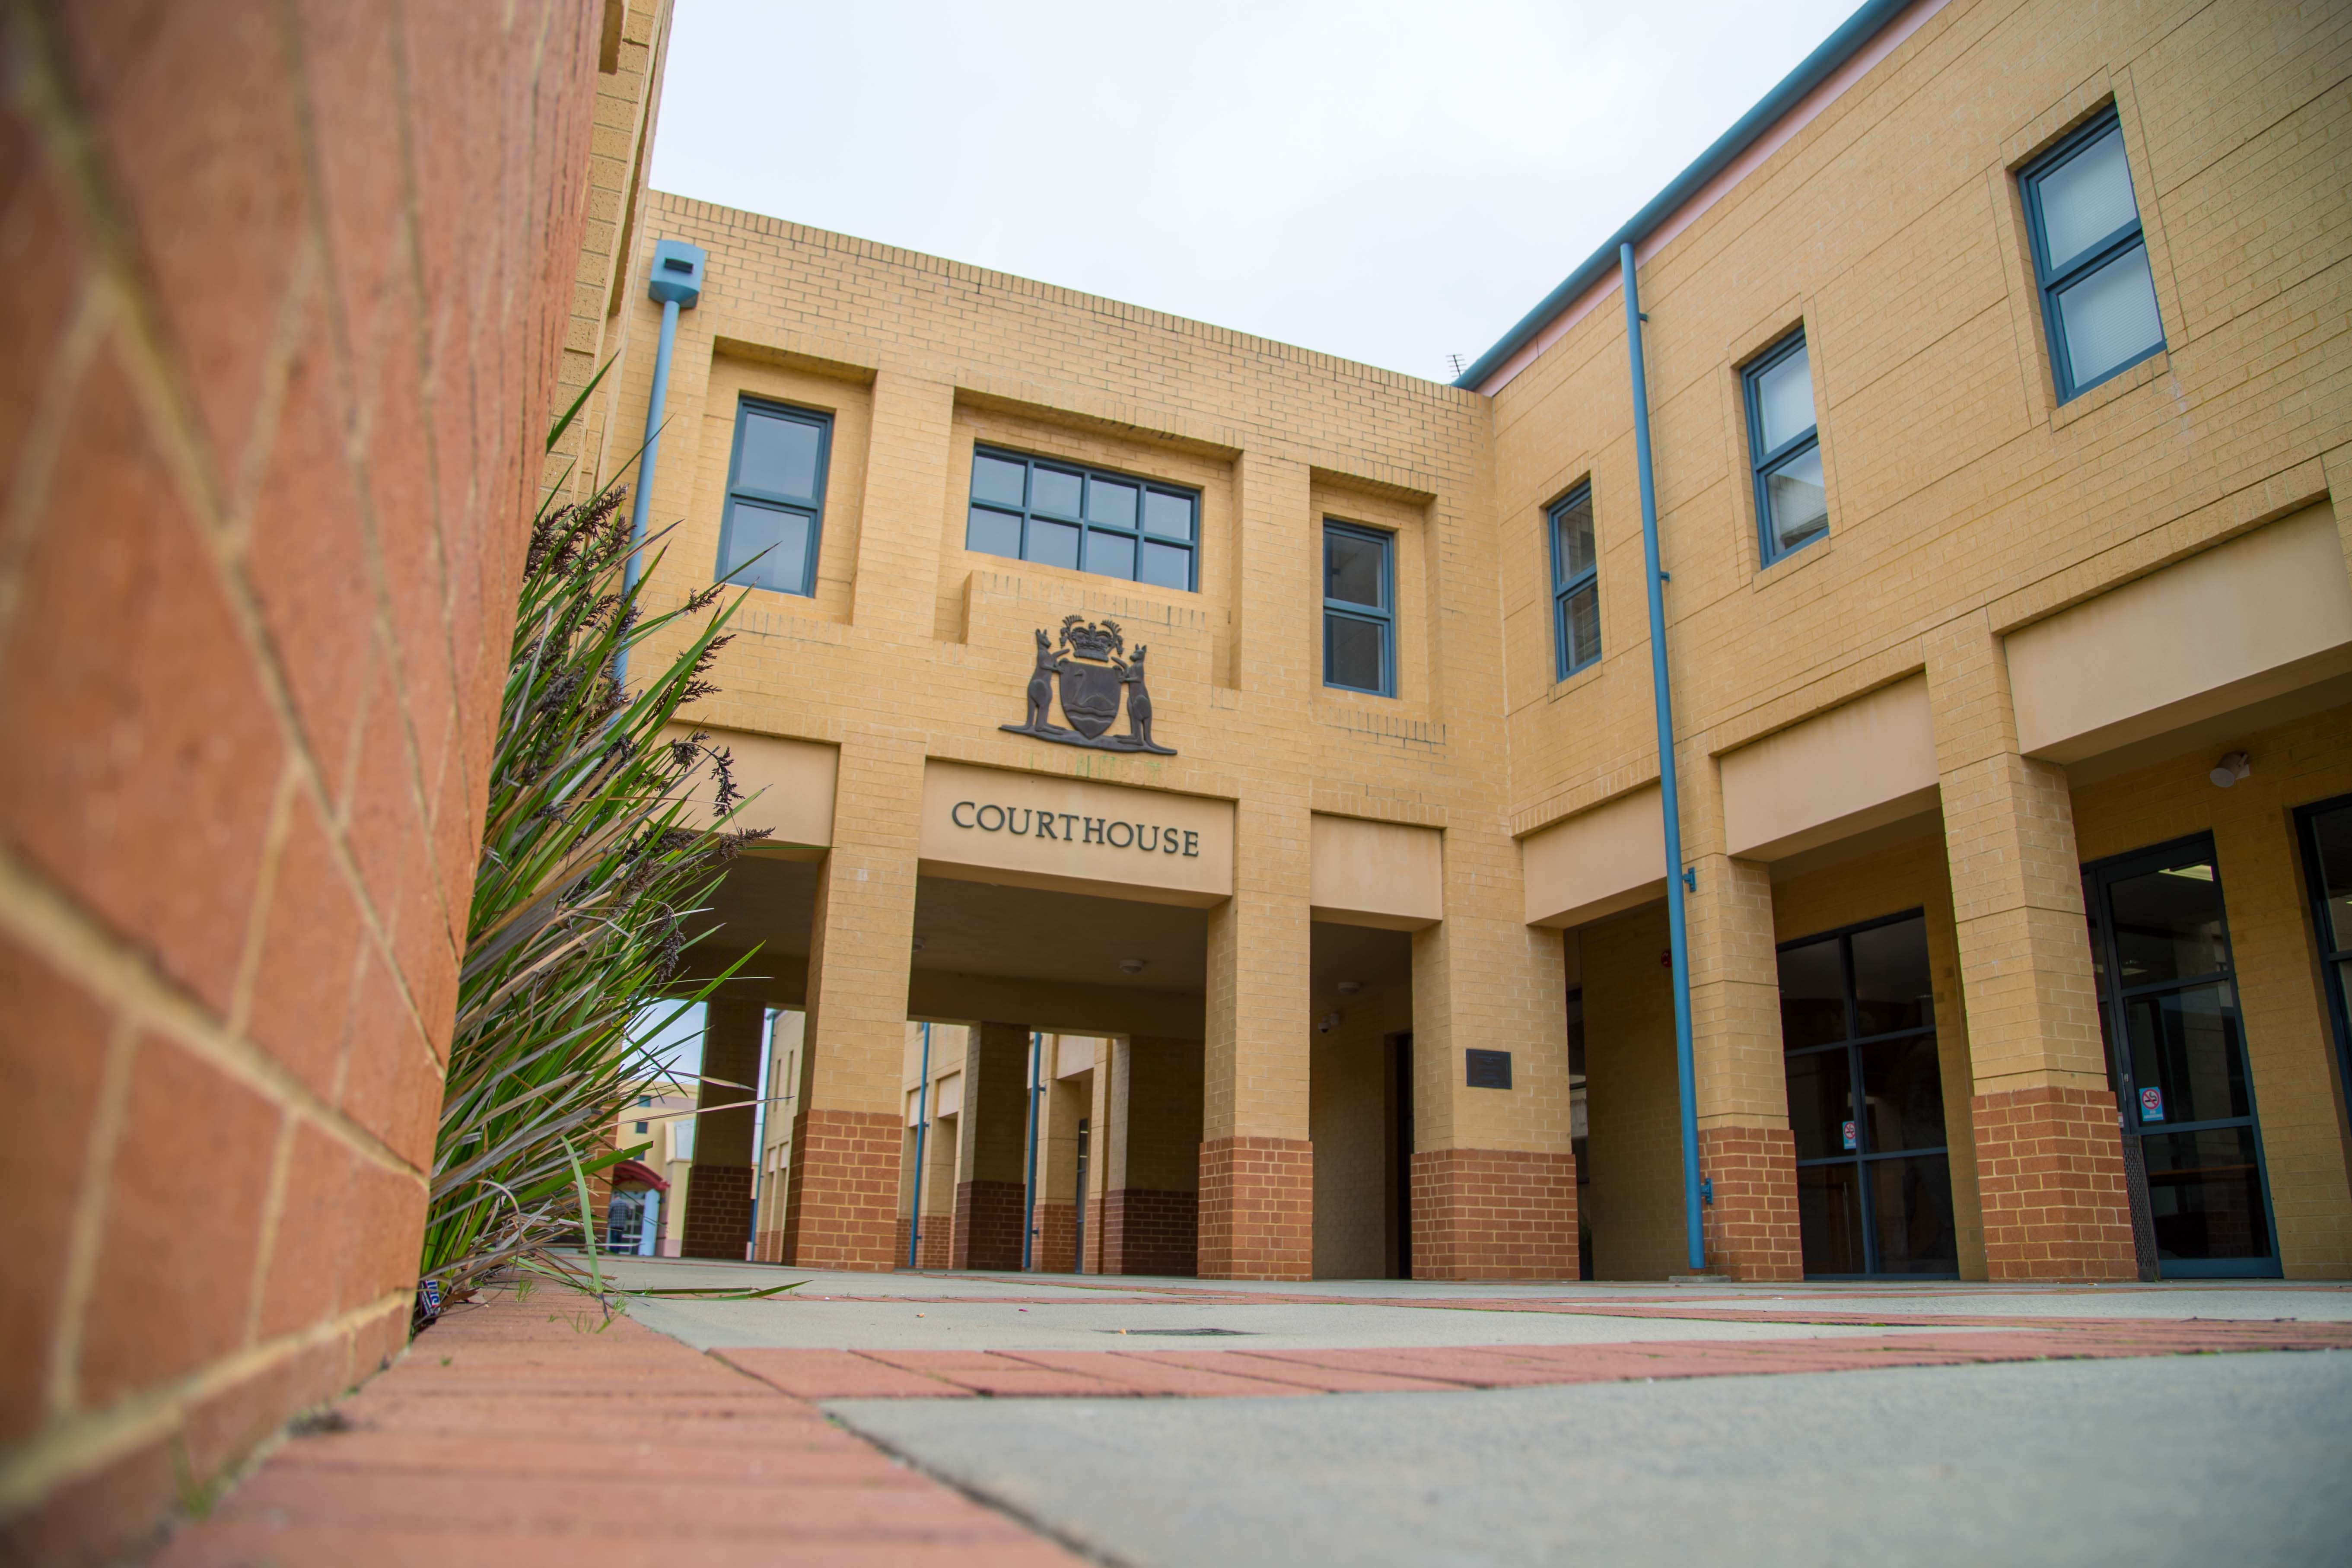 Joondalup Justice Complex Courthouse